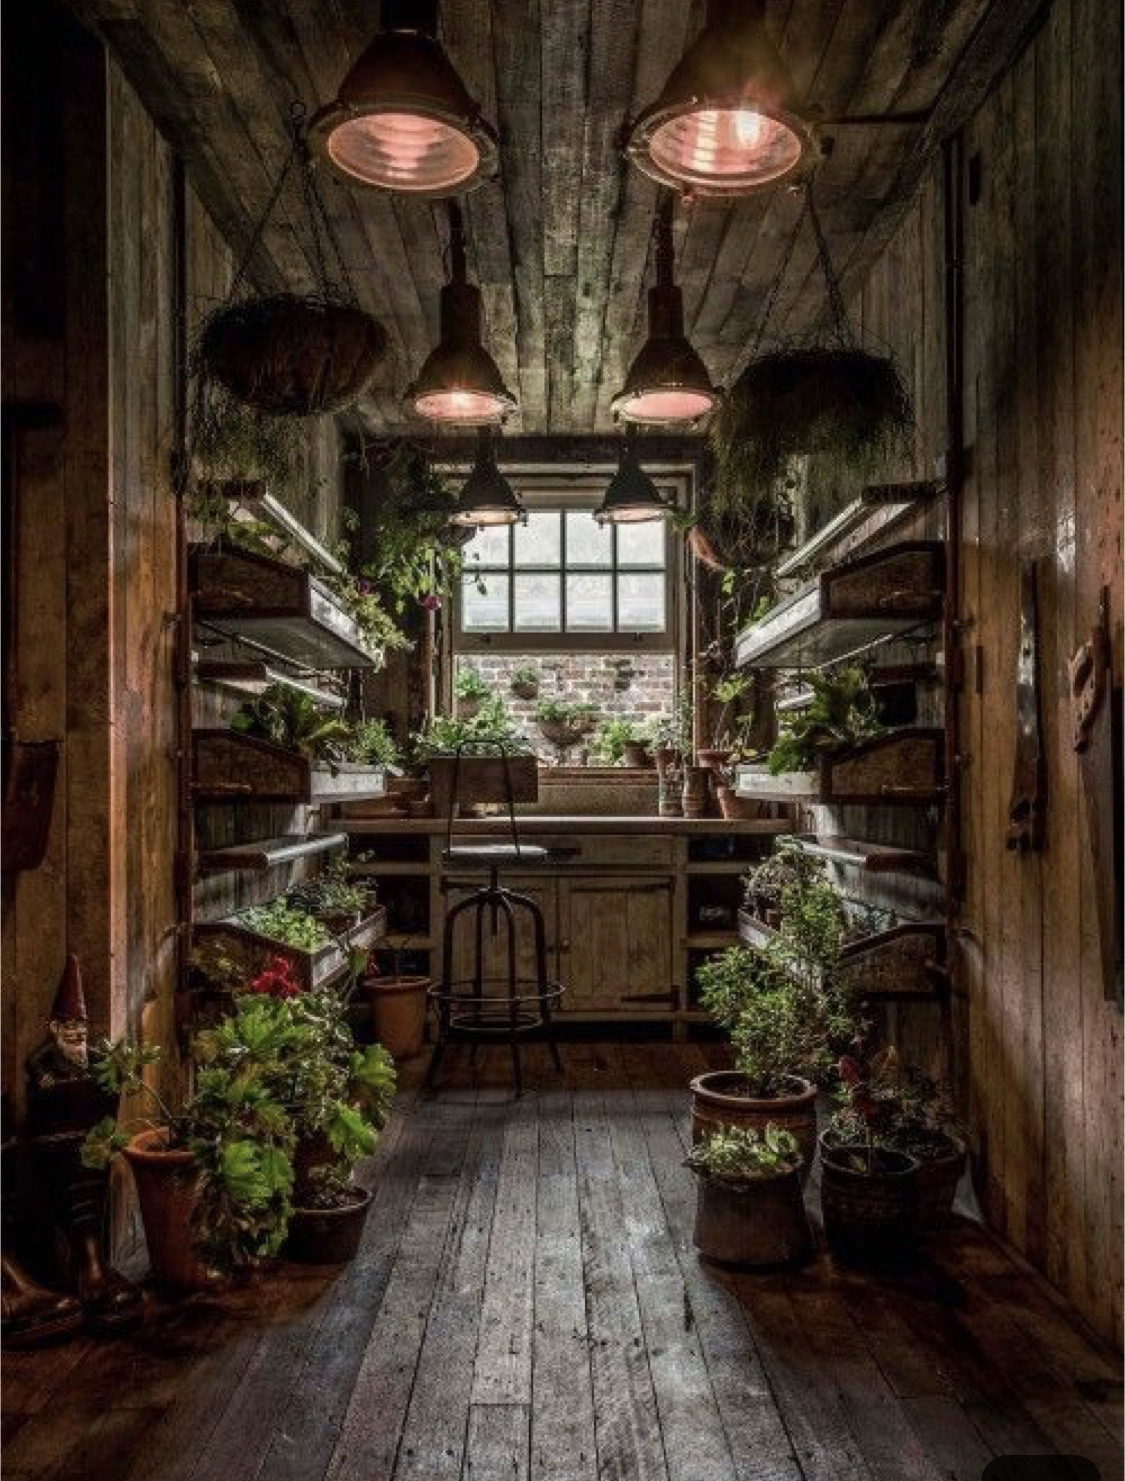 So I want to live in a potting shed. So what?